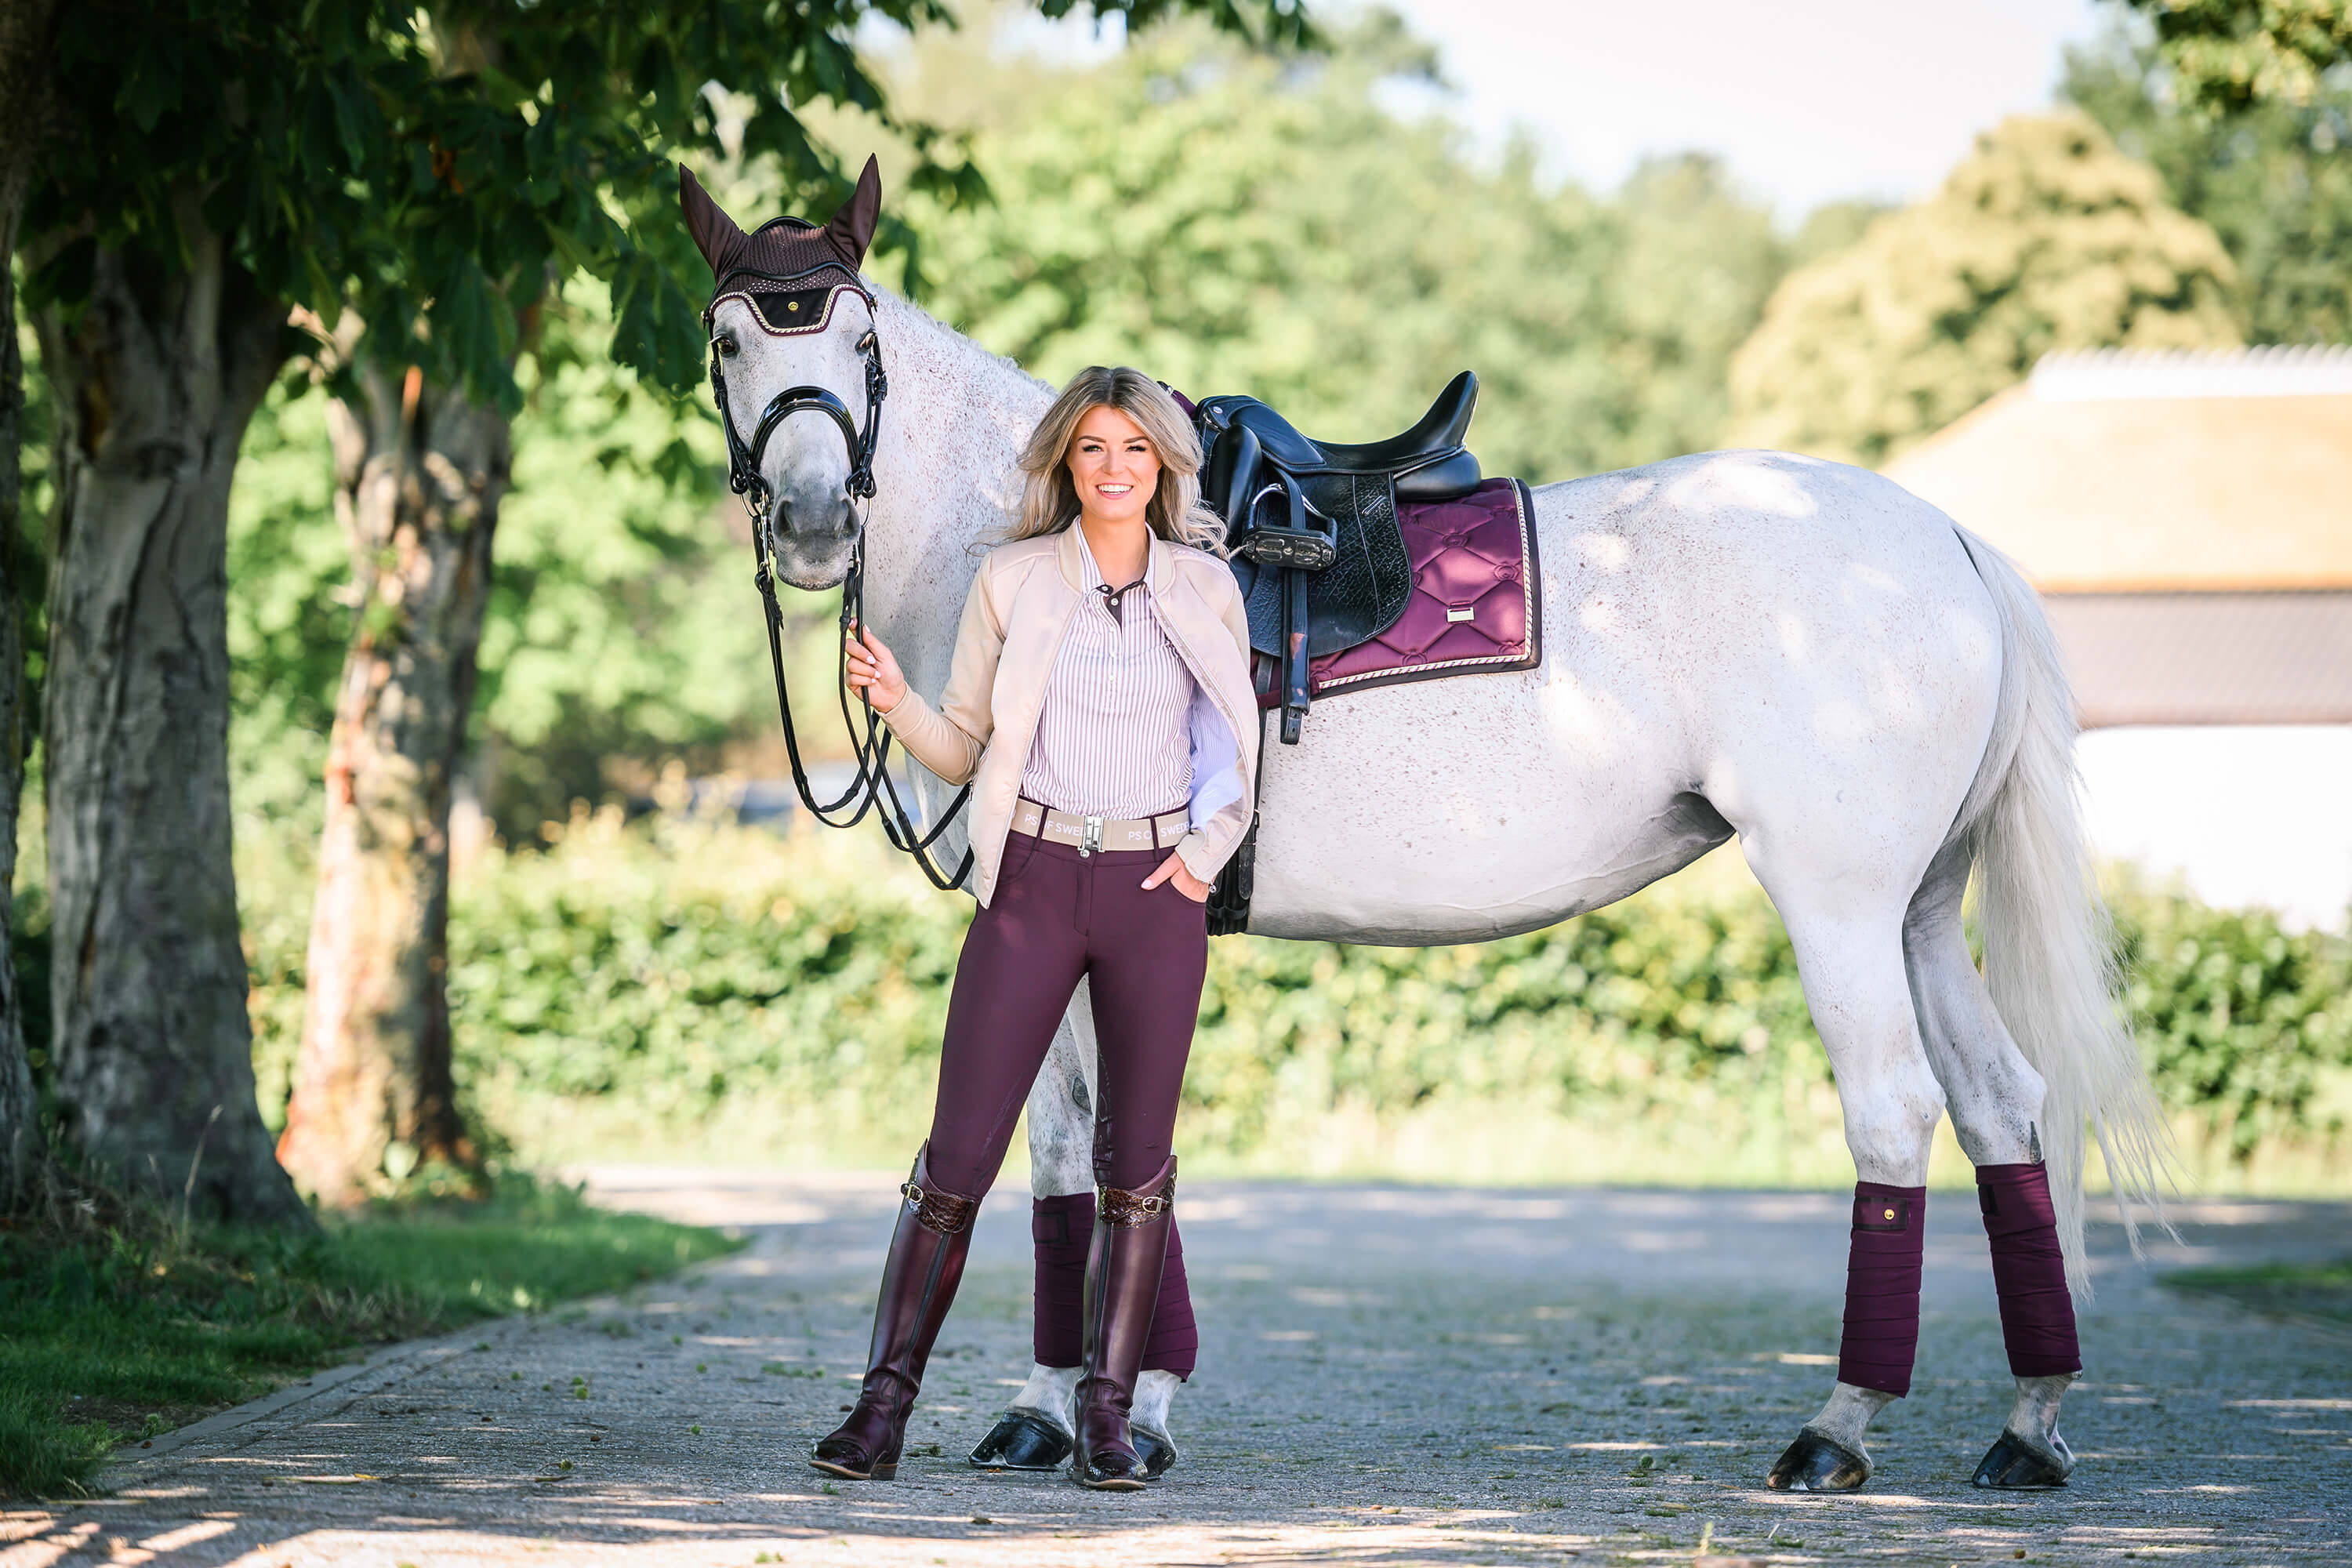 Dressage Saddle Pad In Size Full Burgundy Colored And Anatomically Shaped